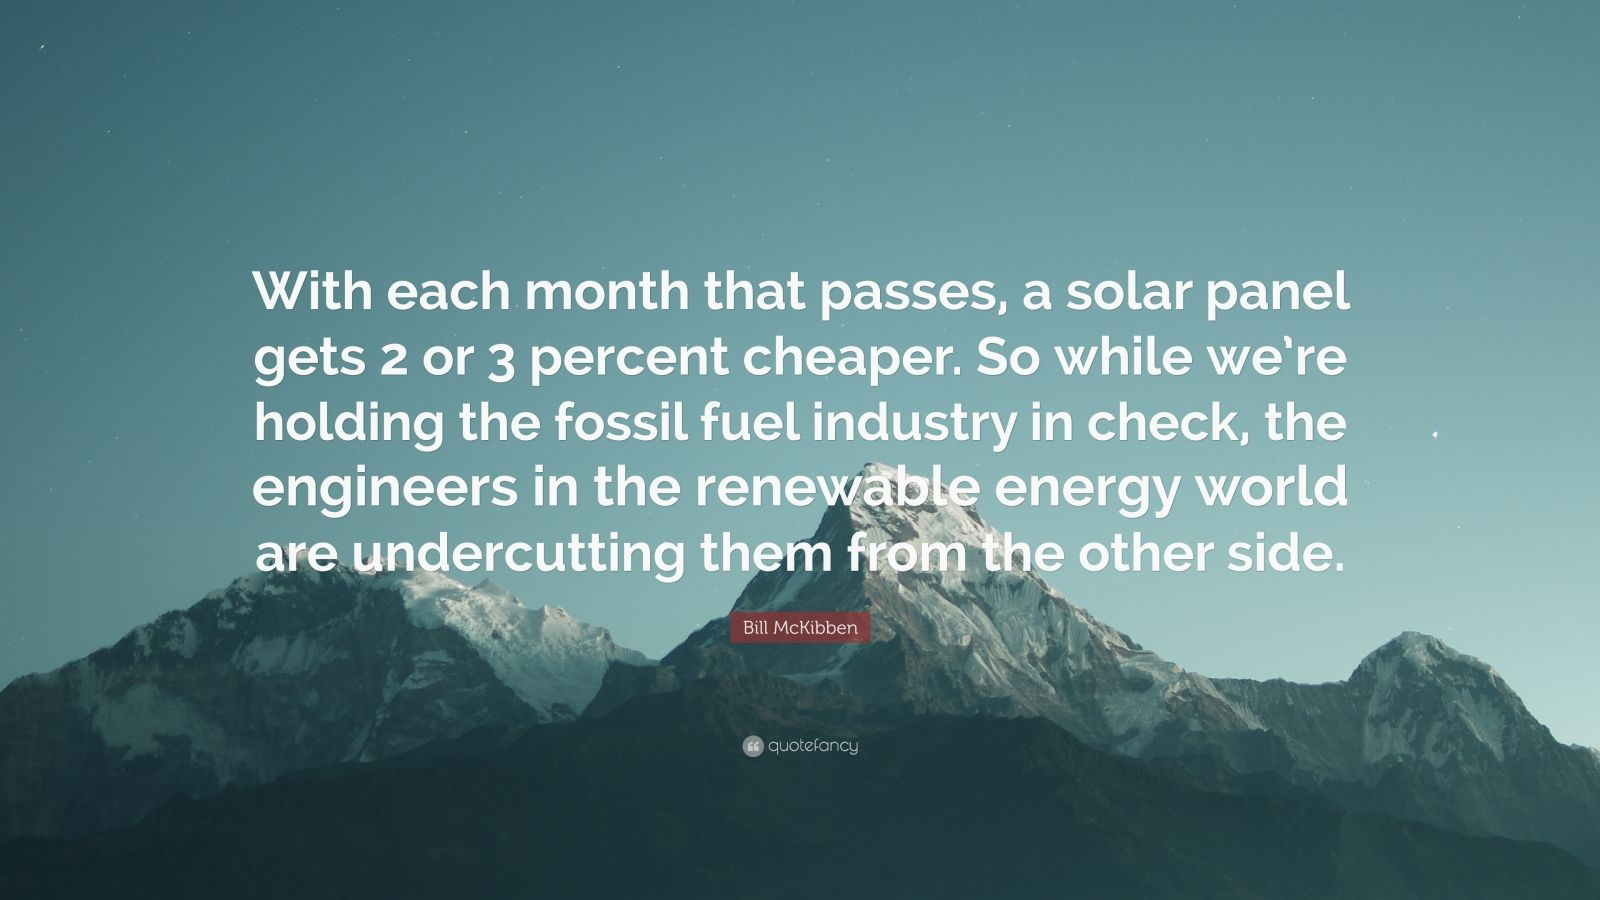 """Bill McKibben Quote: """"With each month that passes, a solar panel gets 2 or 3 percent cheaper. So while we're holding the fossil fuel industry in check, the engineers in the renewable energy world are undercutting them from the other side."""""""